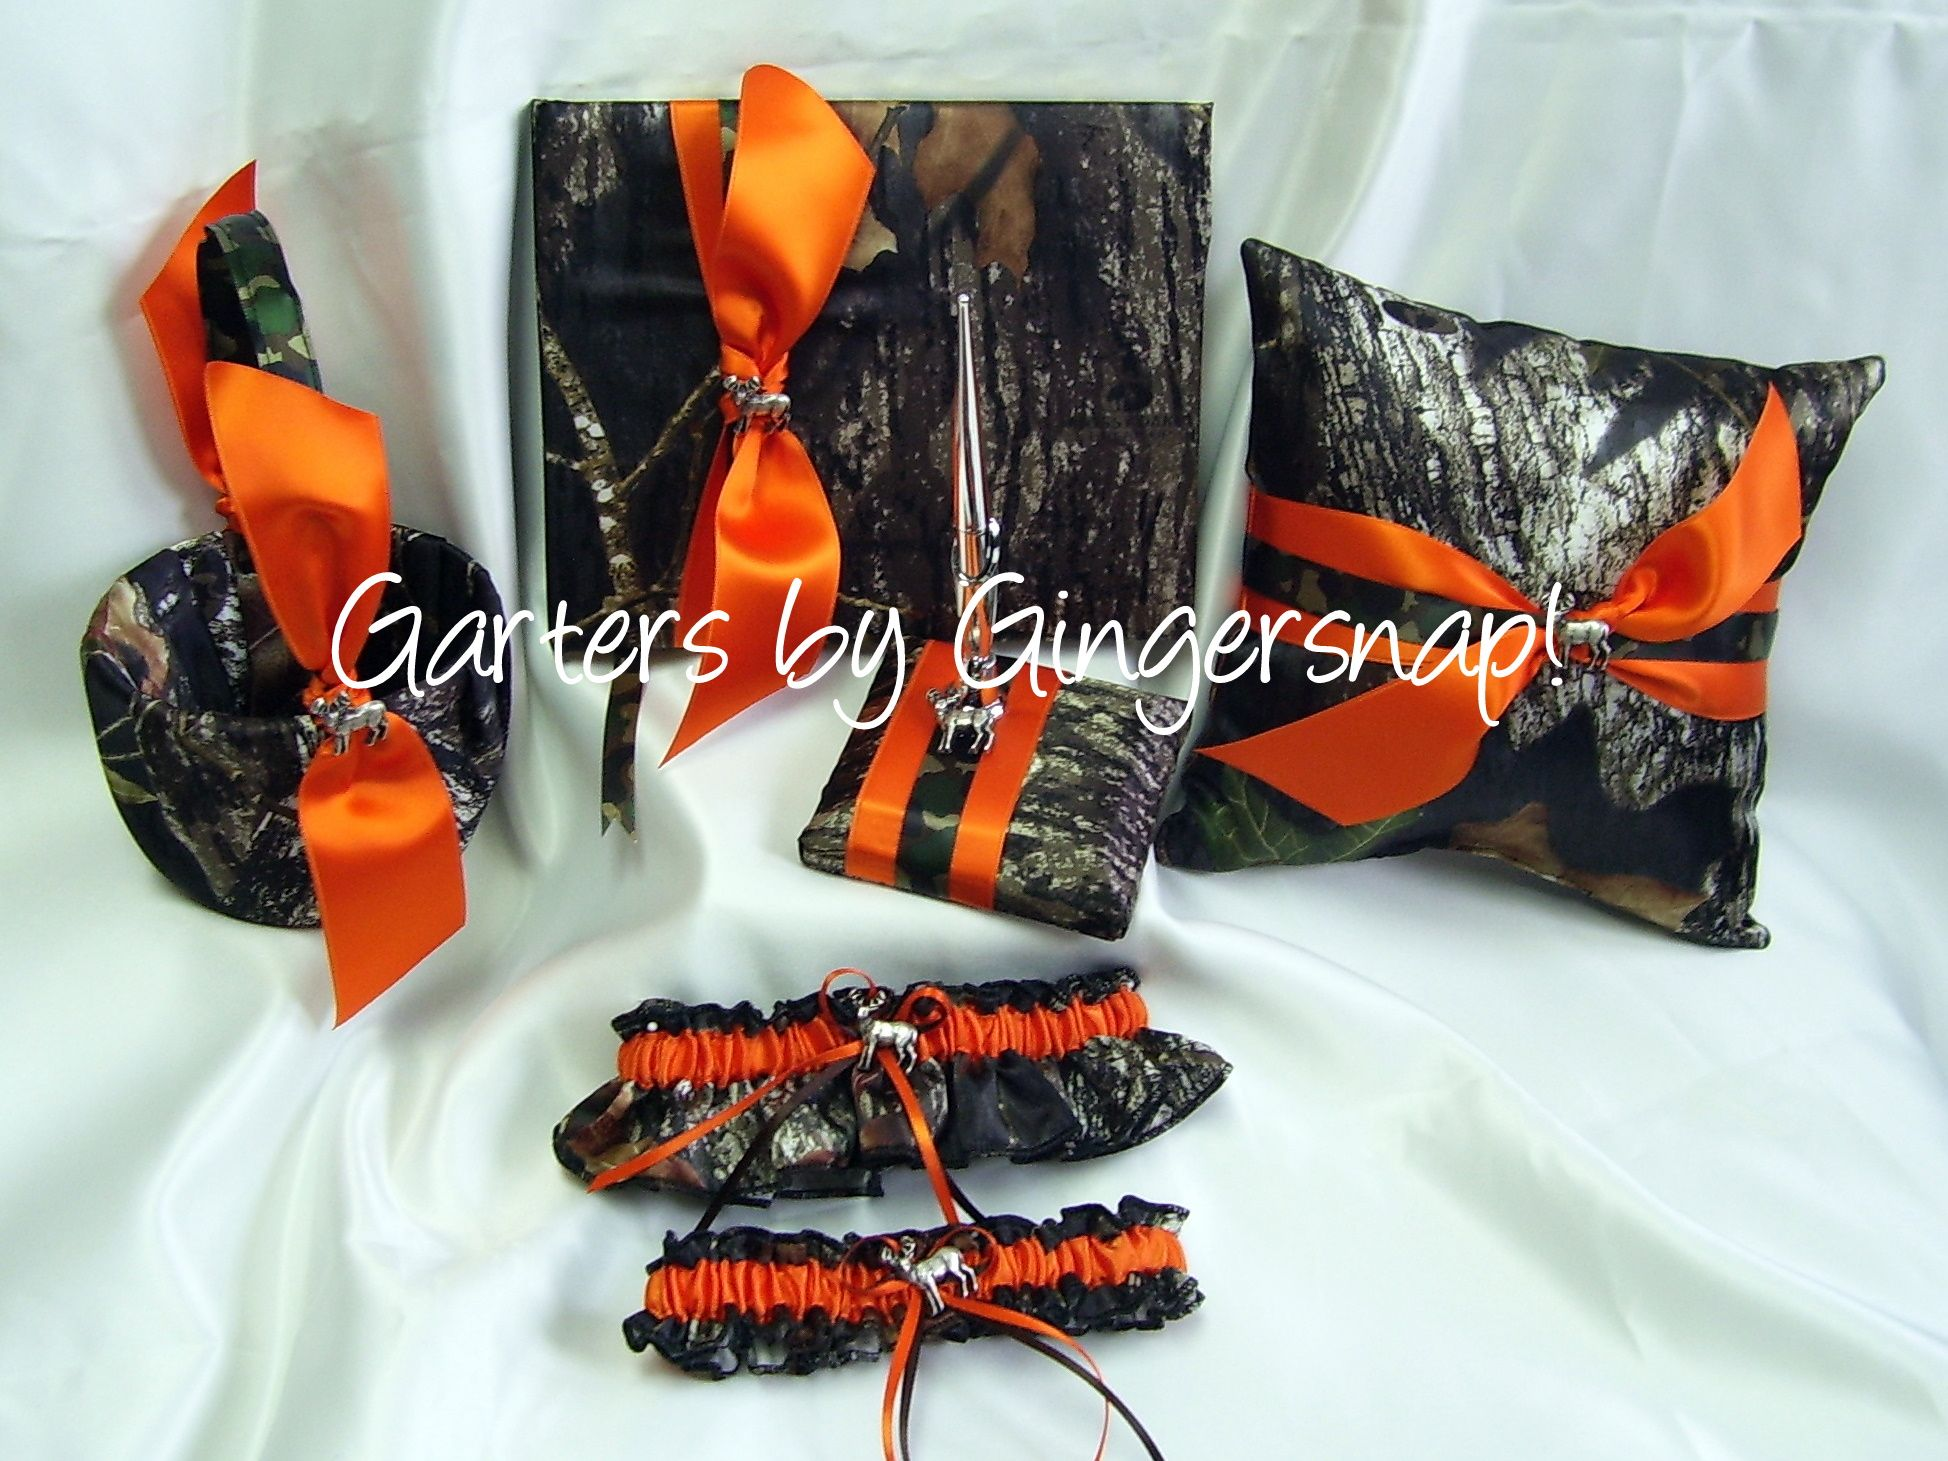 camo wedding supplies know where i can find cheap camo wedding supplies - Cheap Camo Wedding Rings